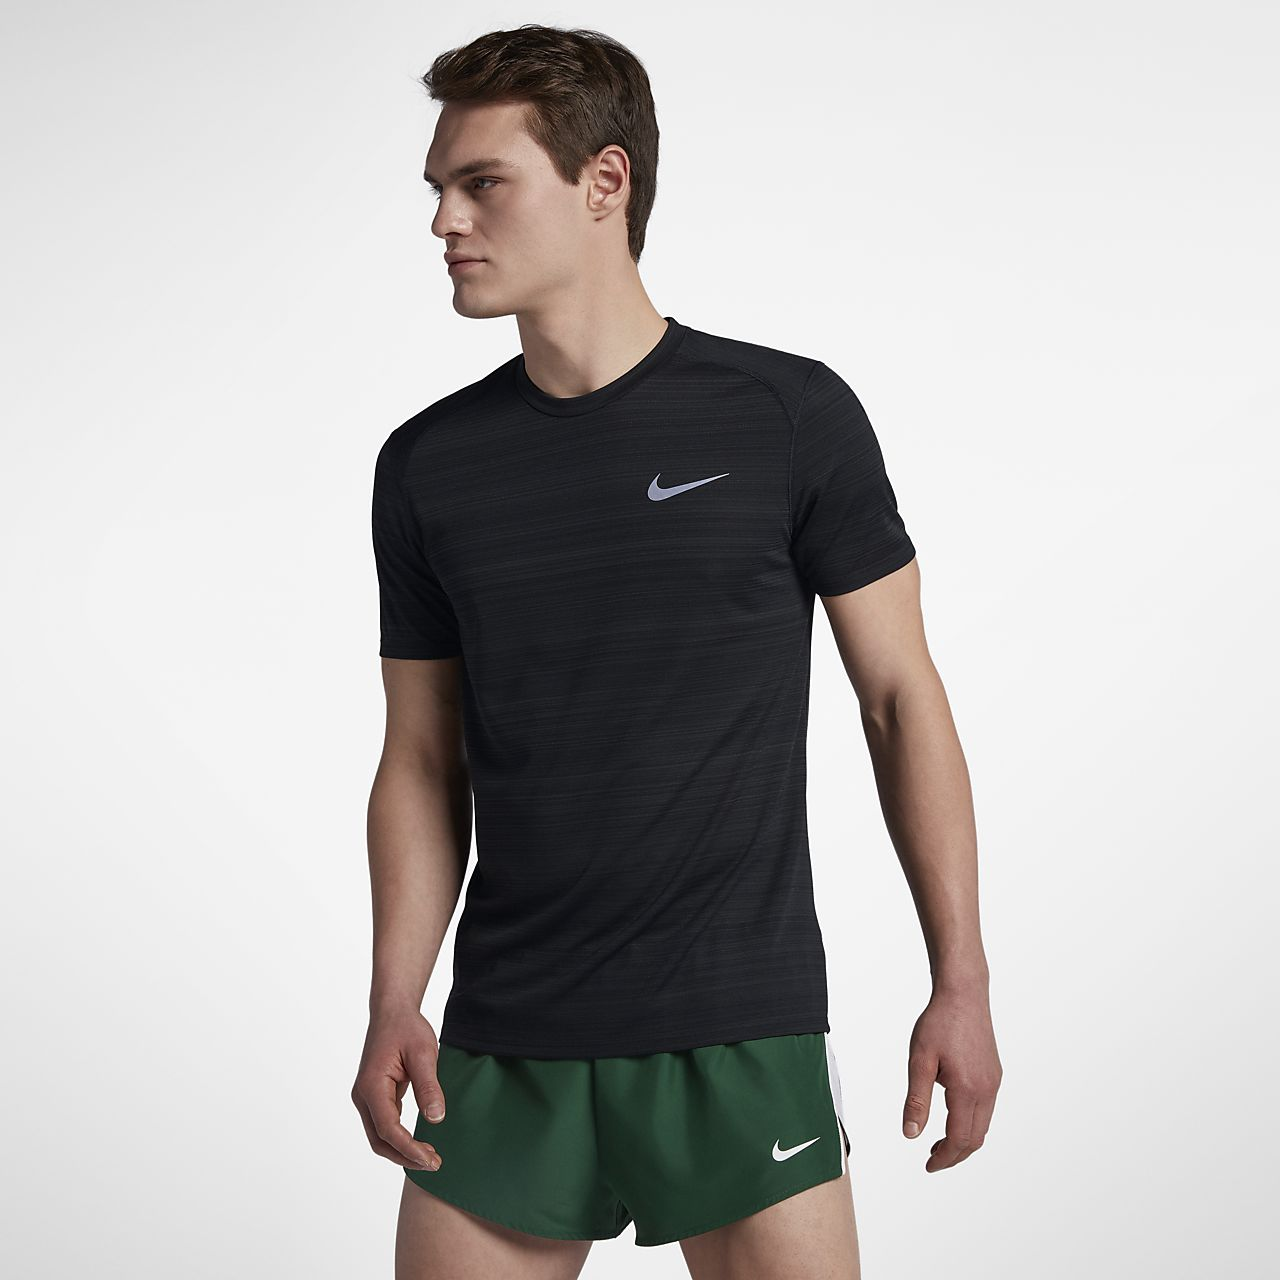 Nike dri fit miler men 39 s short sleeve running top for Buy dri fit shirts